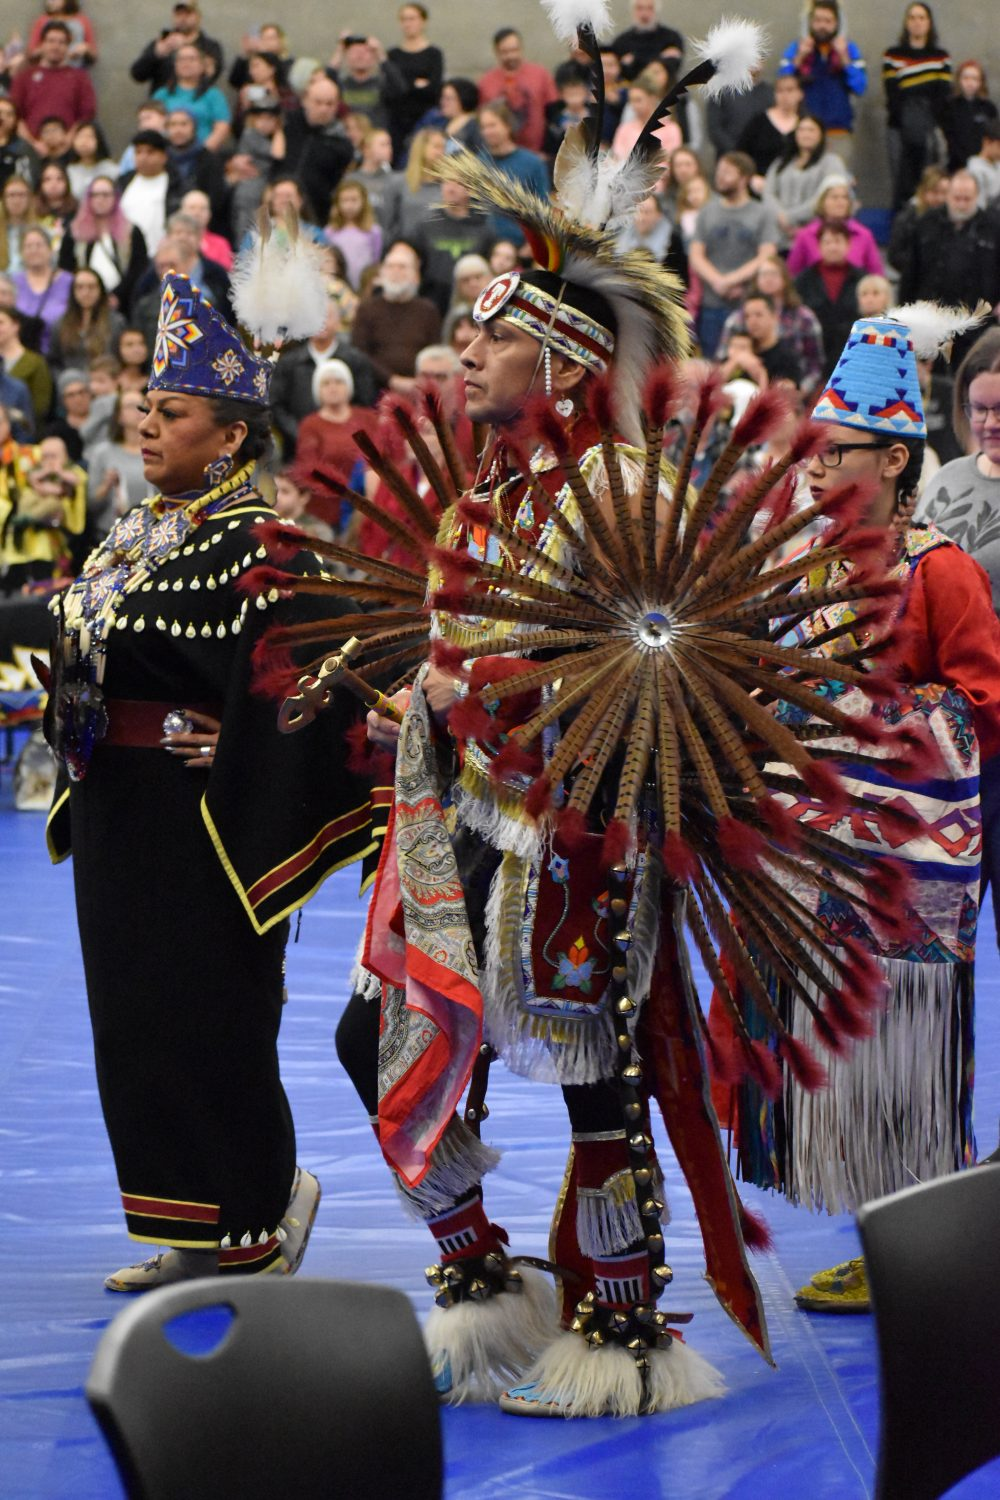 Photo of dancers at the powwow